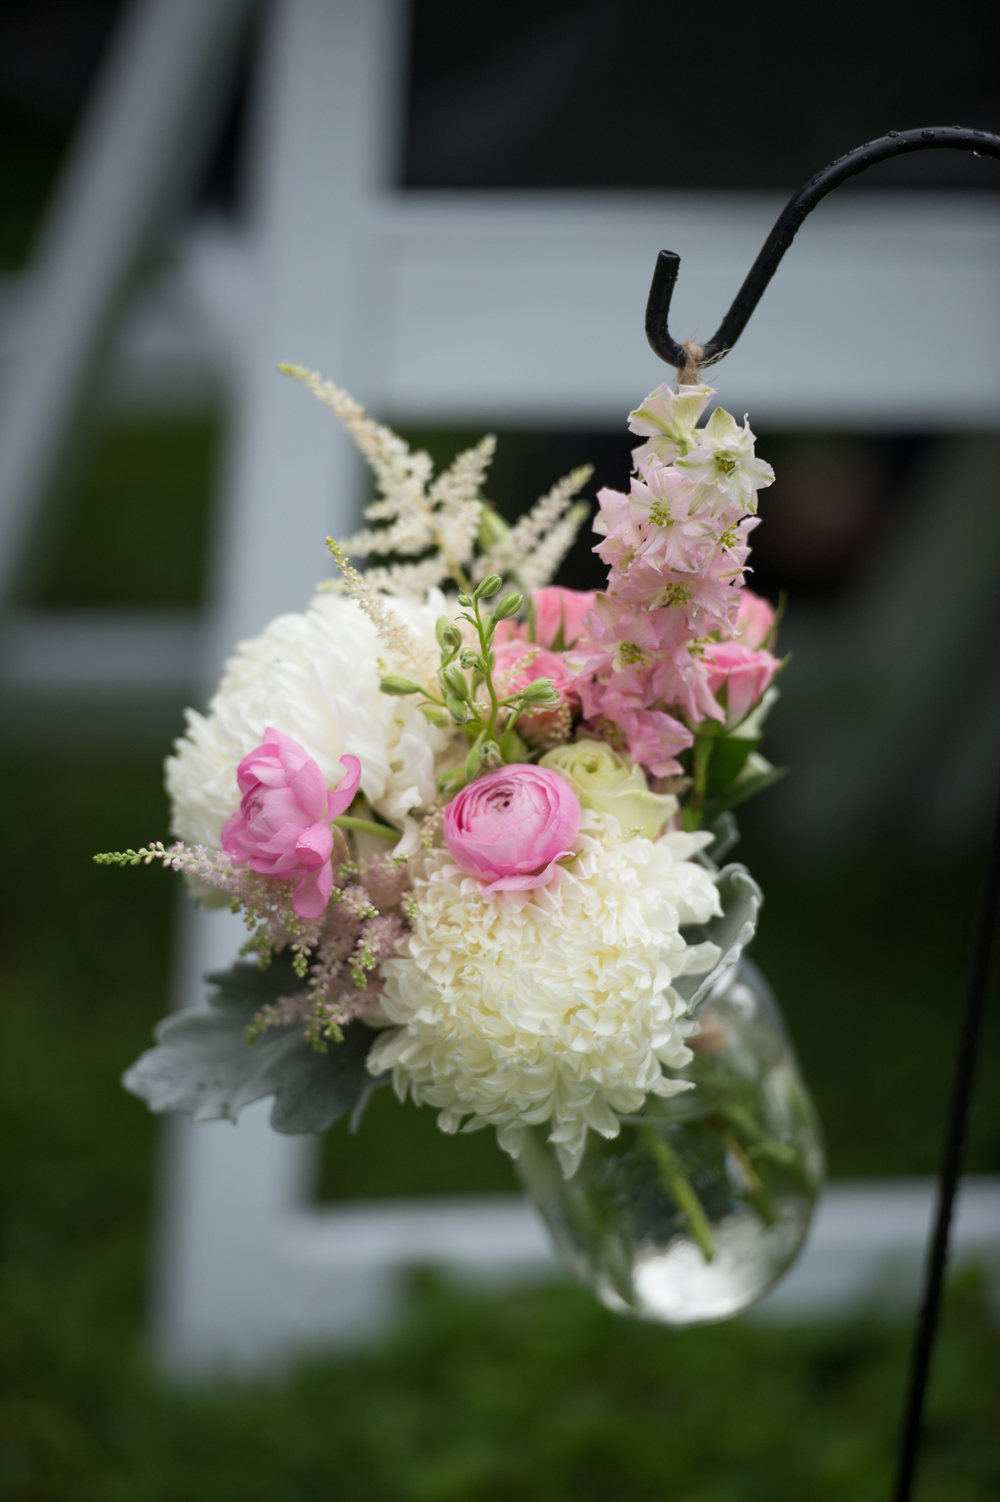 White and Pink Ceremony Flowers (Photo Credit: Amberlee Christey Photography)